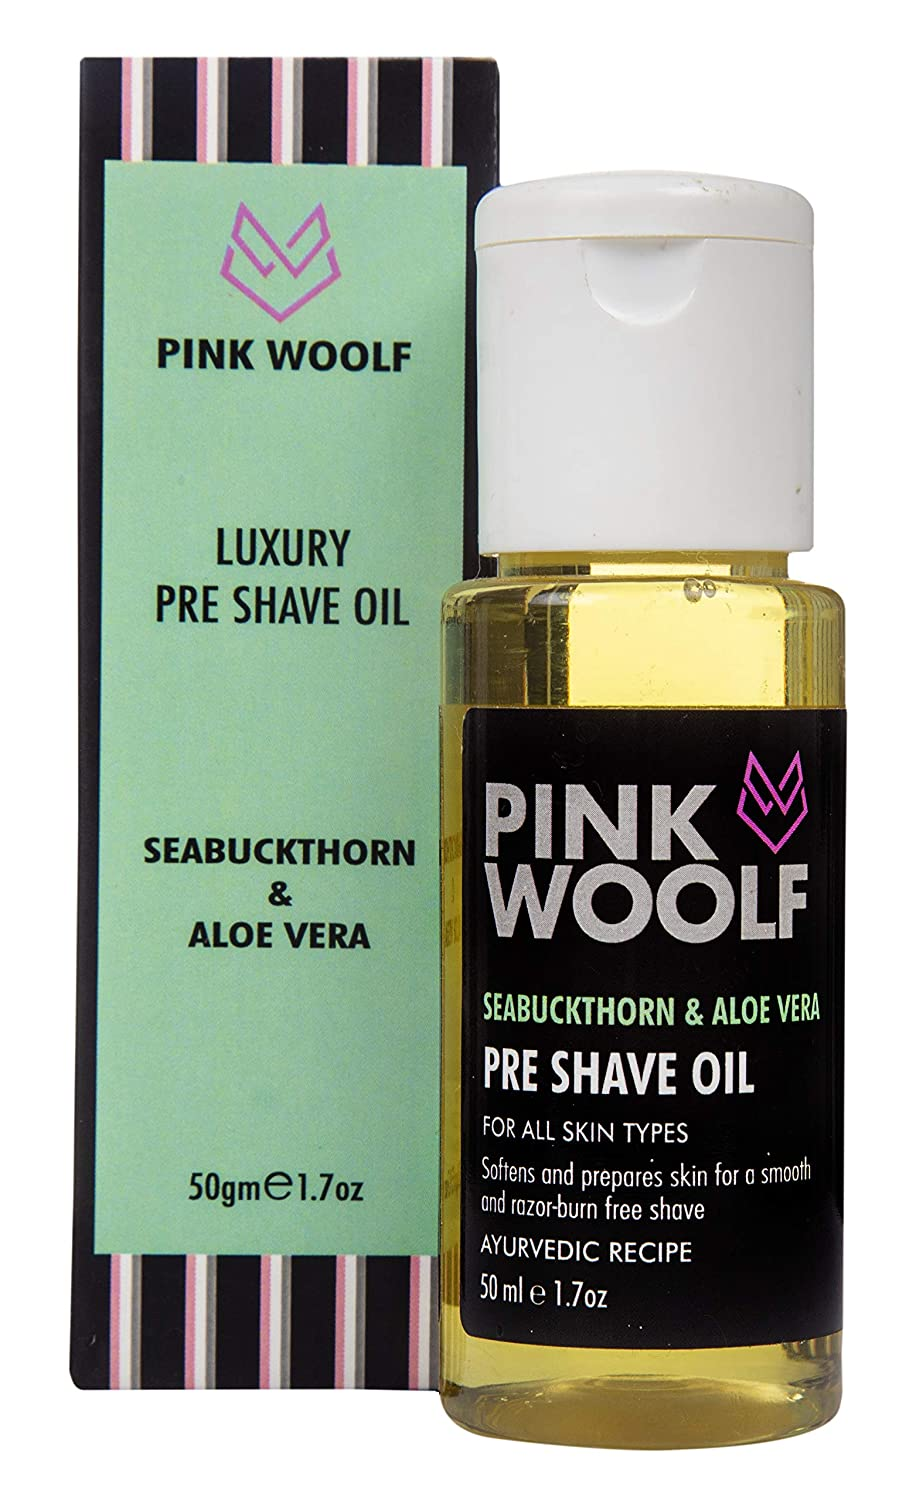 Pink Woolf Pre Shave Oil for Men | SEABUCKTHORN & ALOE VERA | Tea Tree and Olive Oil | Apply Before Shave for a Smooth Shave with no Razor Burns | 50ml